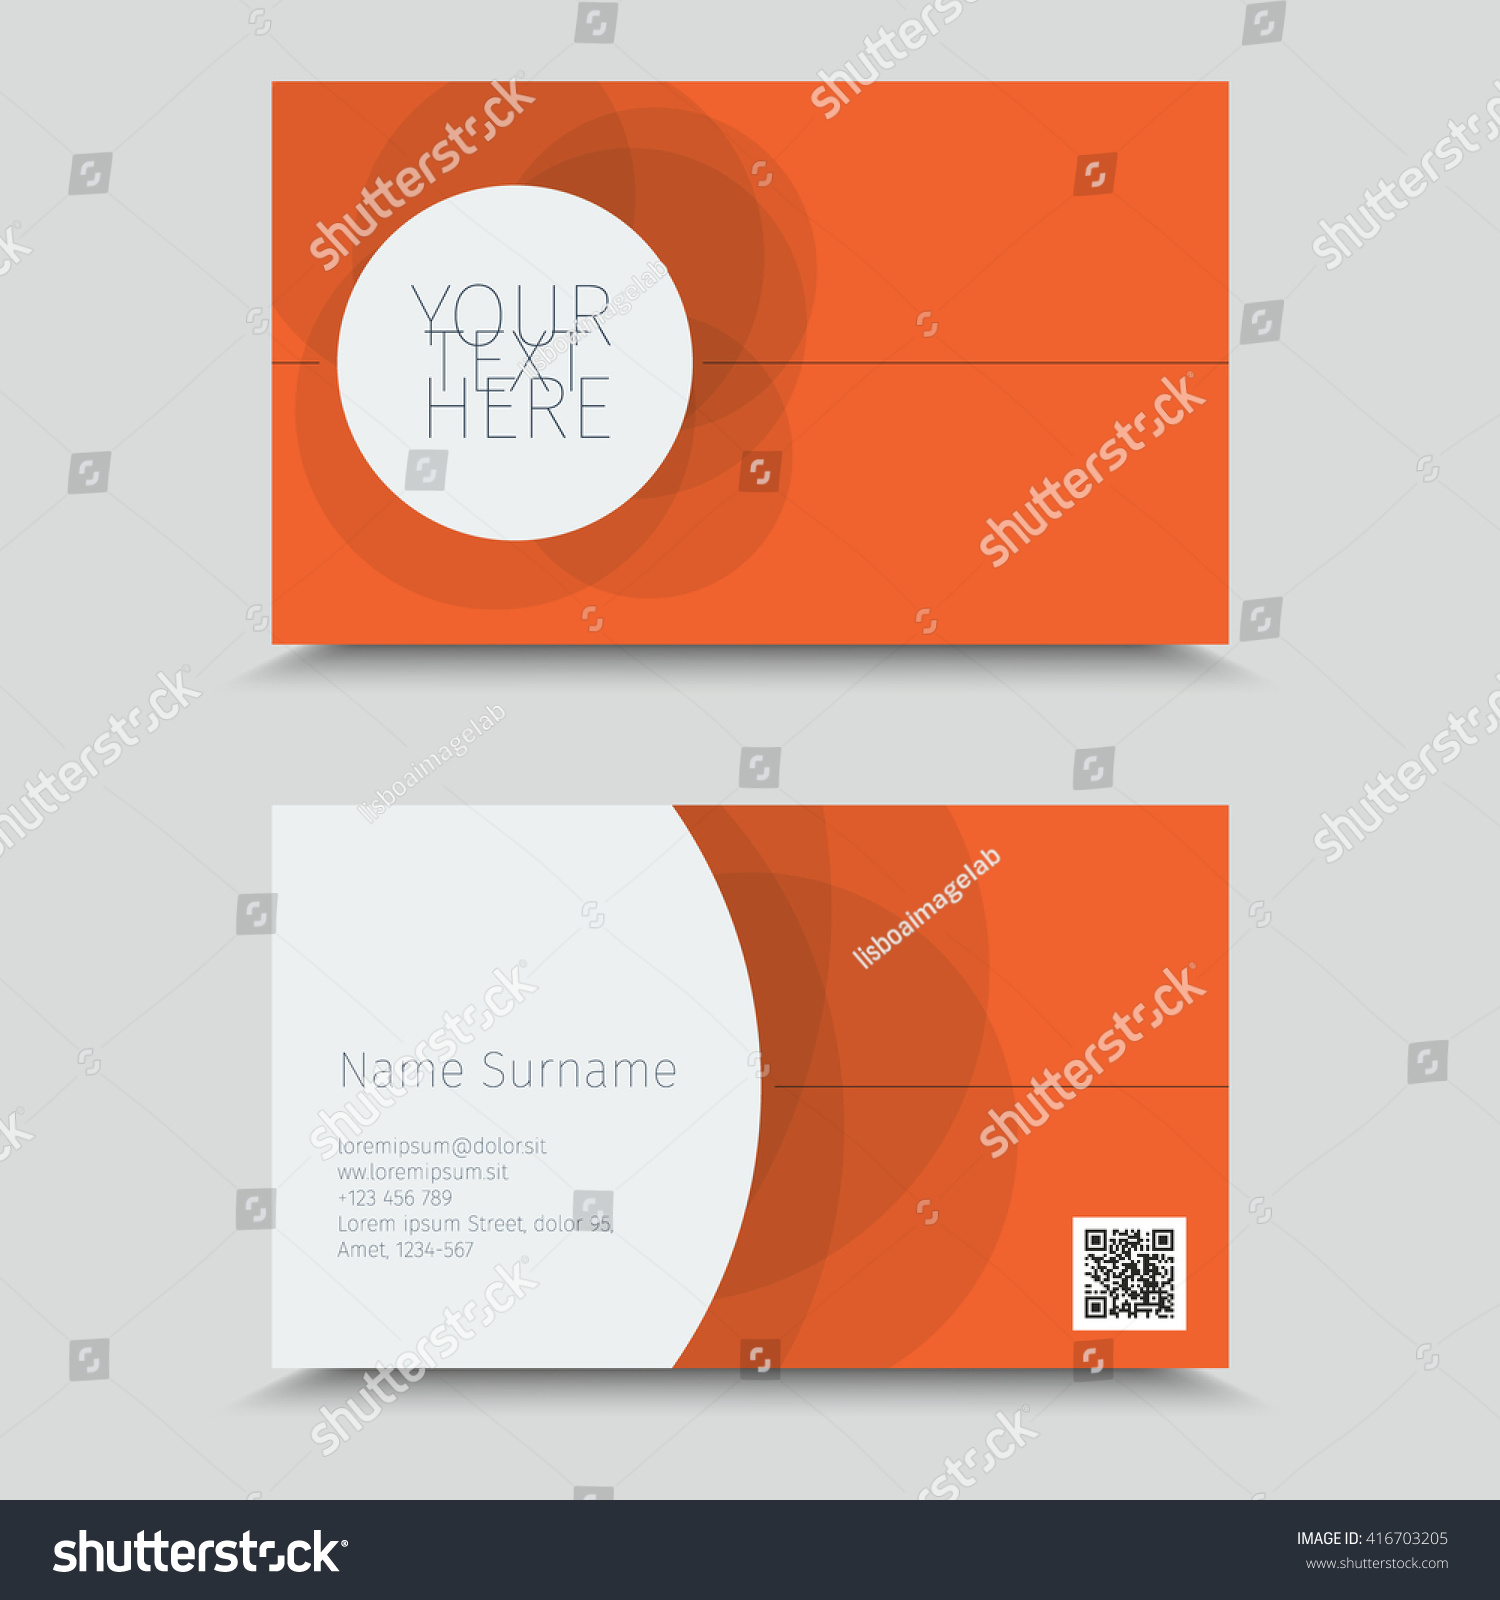 Visit Card QR Code Business Card Stock Vector 416703205 - Shutterstock